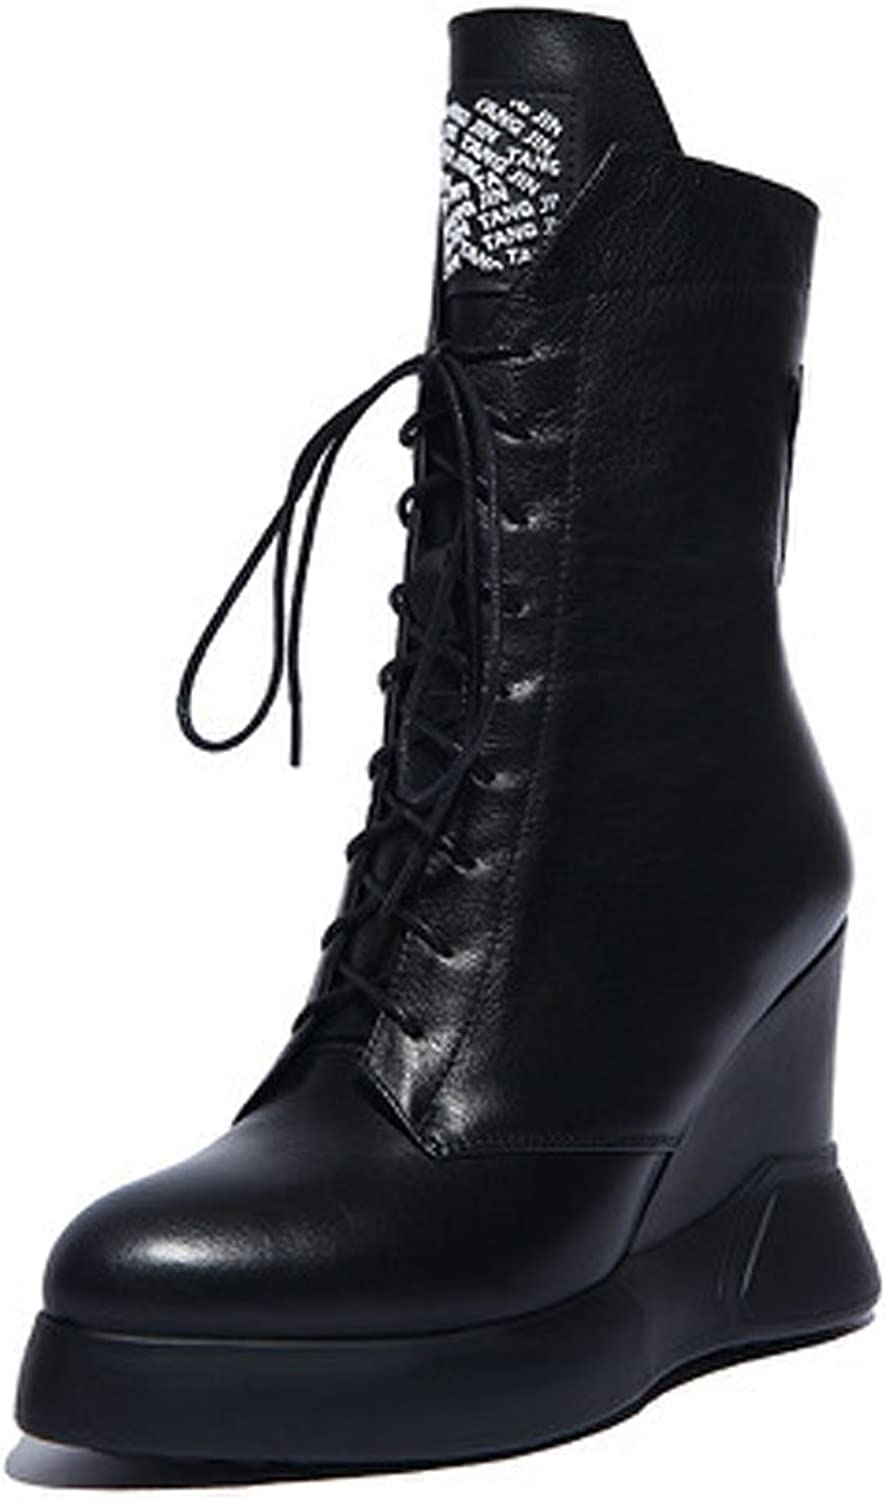 MINIVOG Height Incresing Wedge Patent Leather Martin Ankle Booties